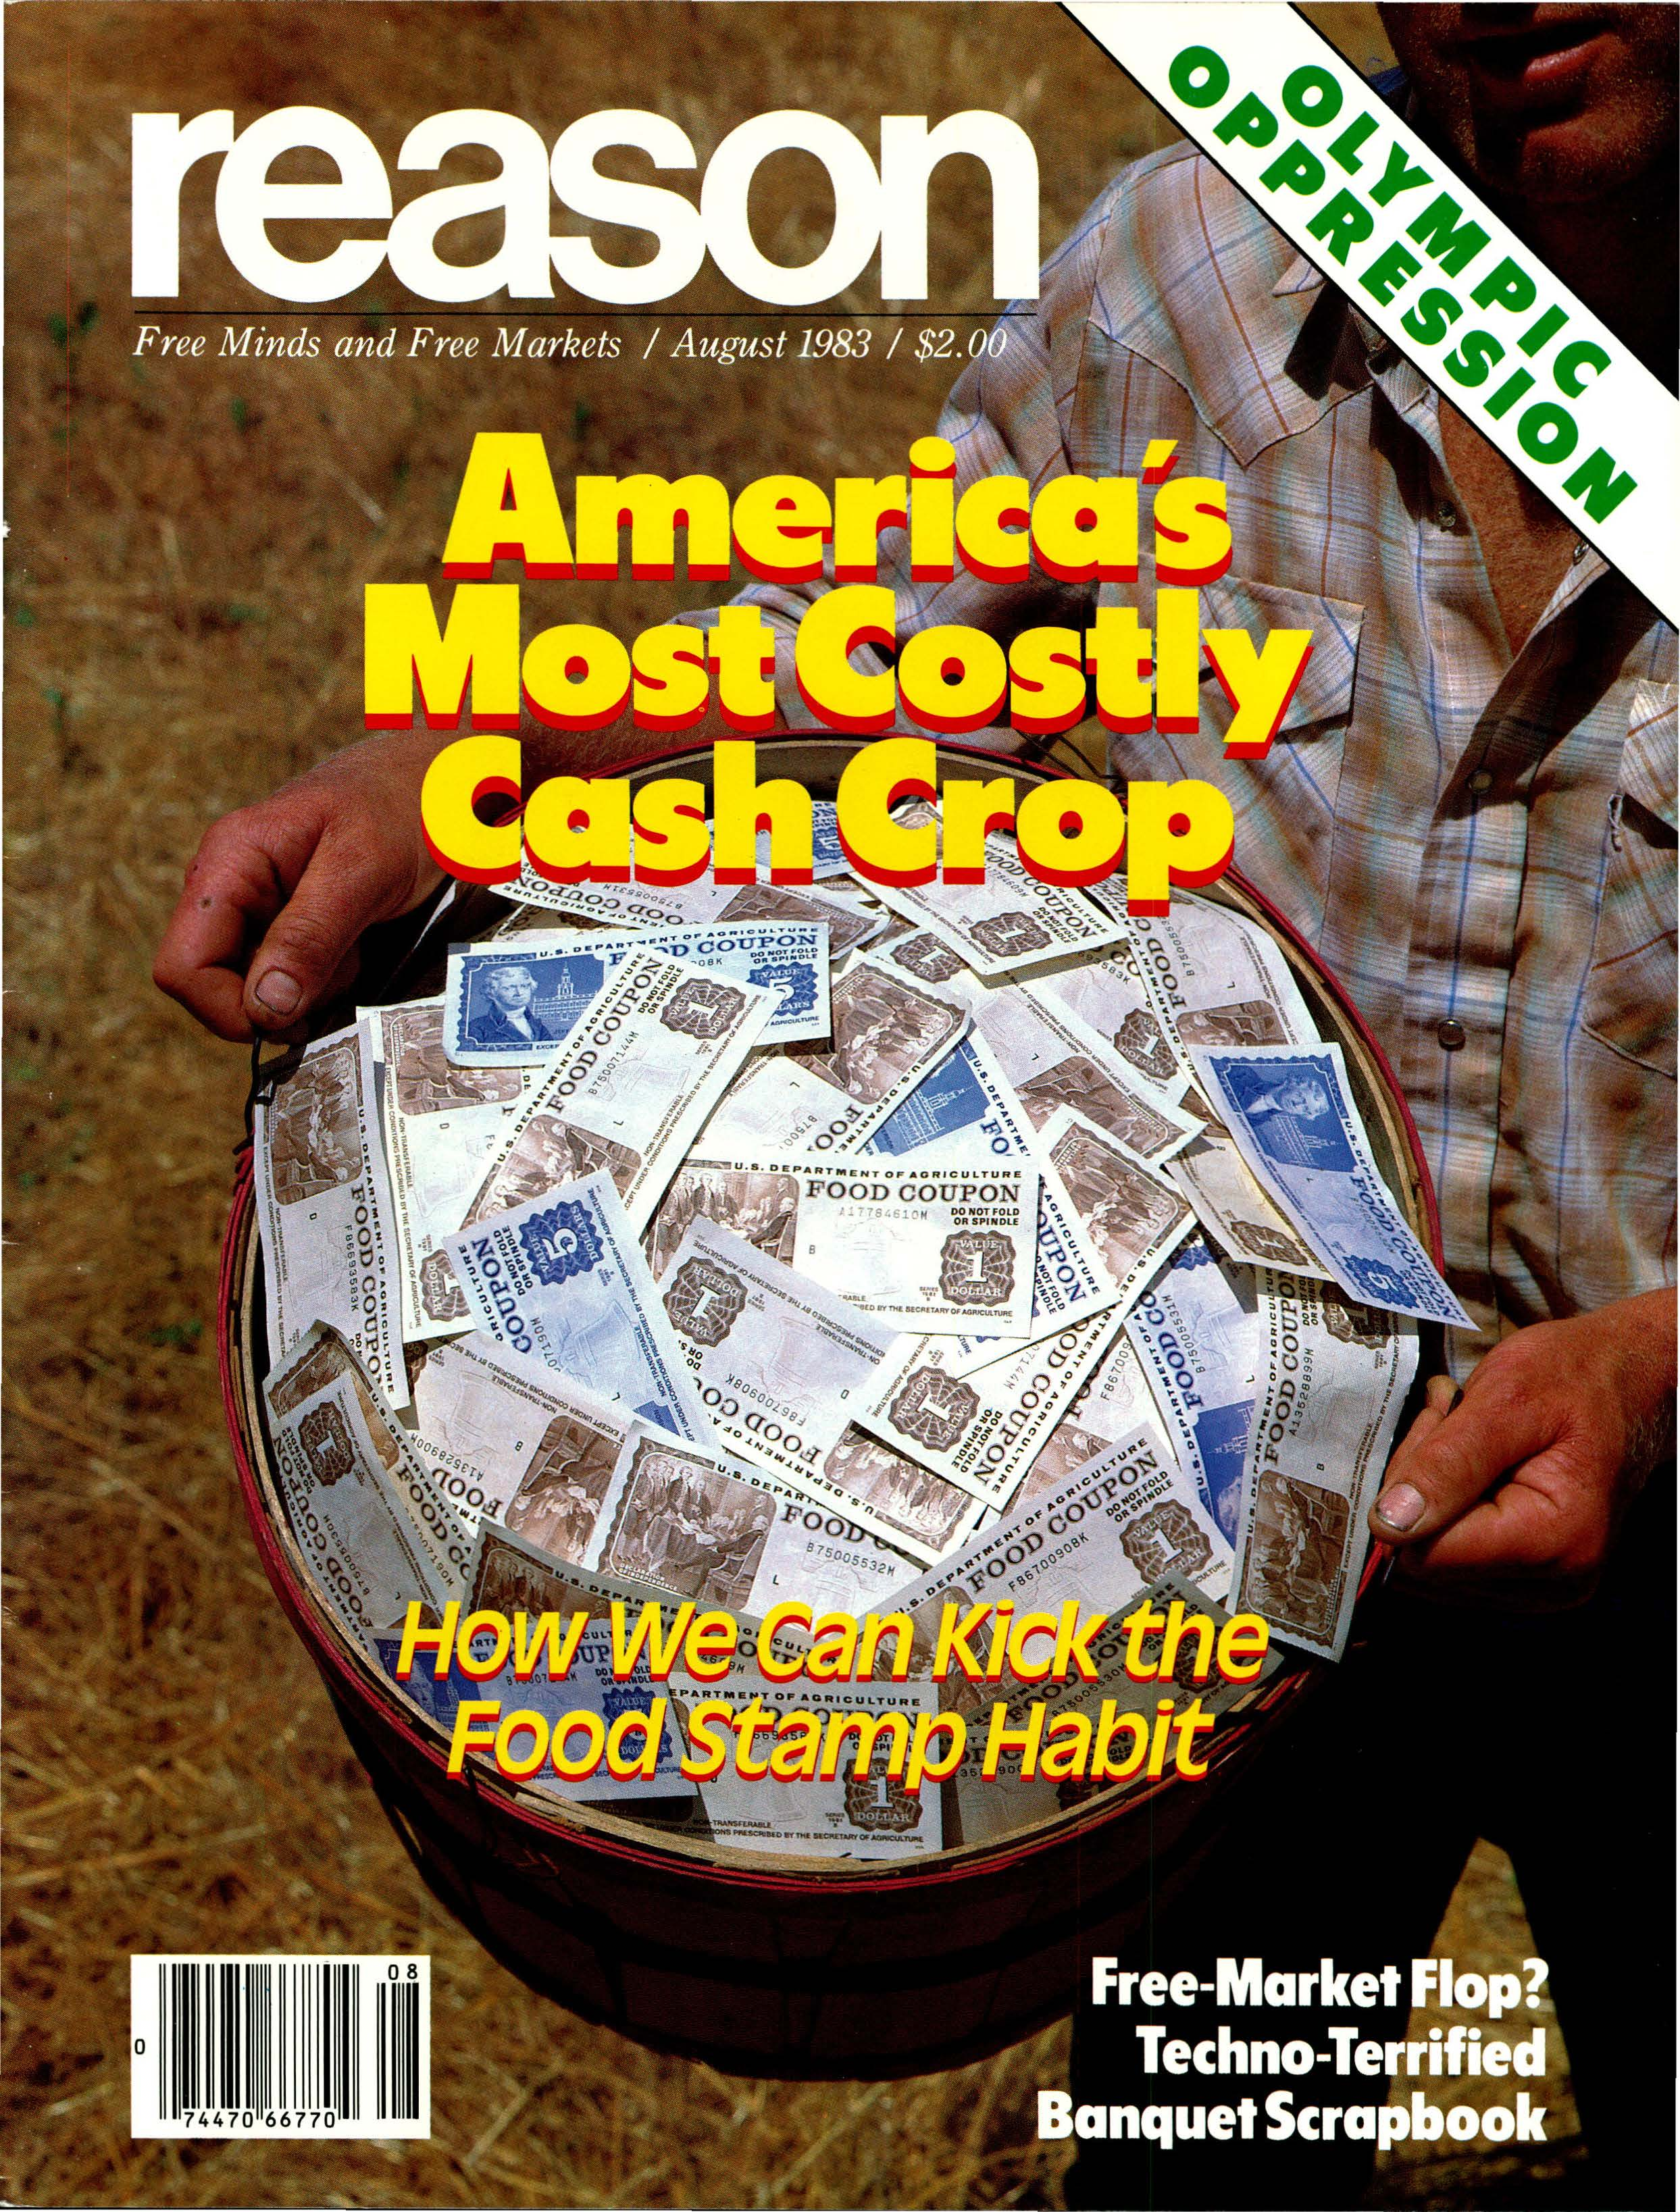 Reason Magazine, August 1983 cover image